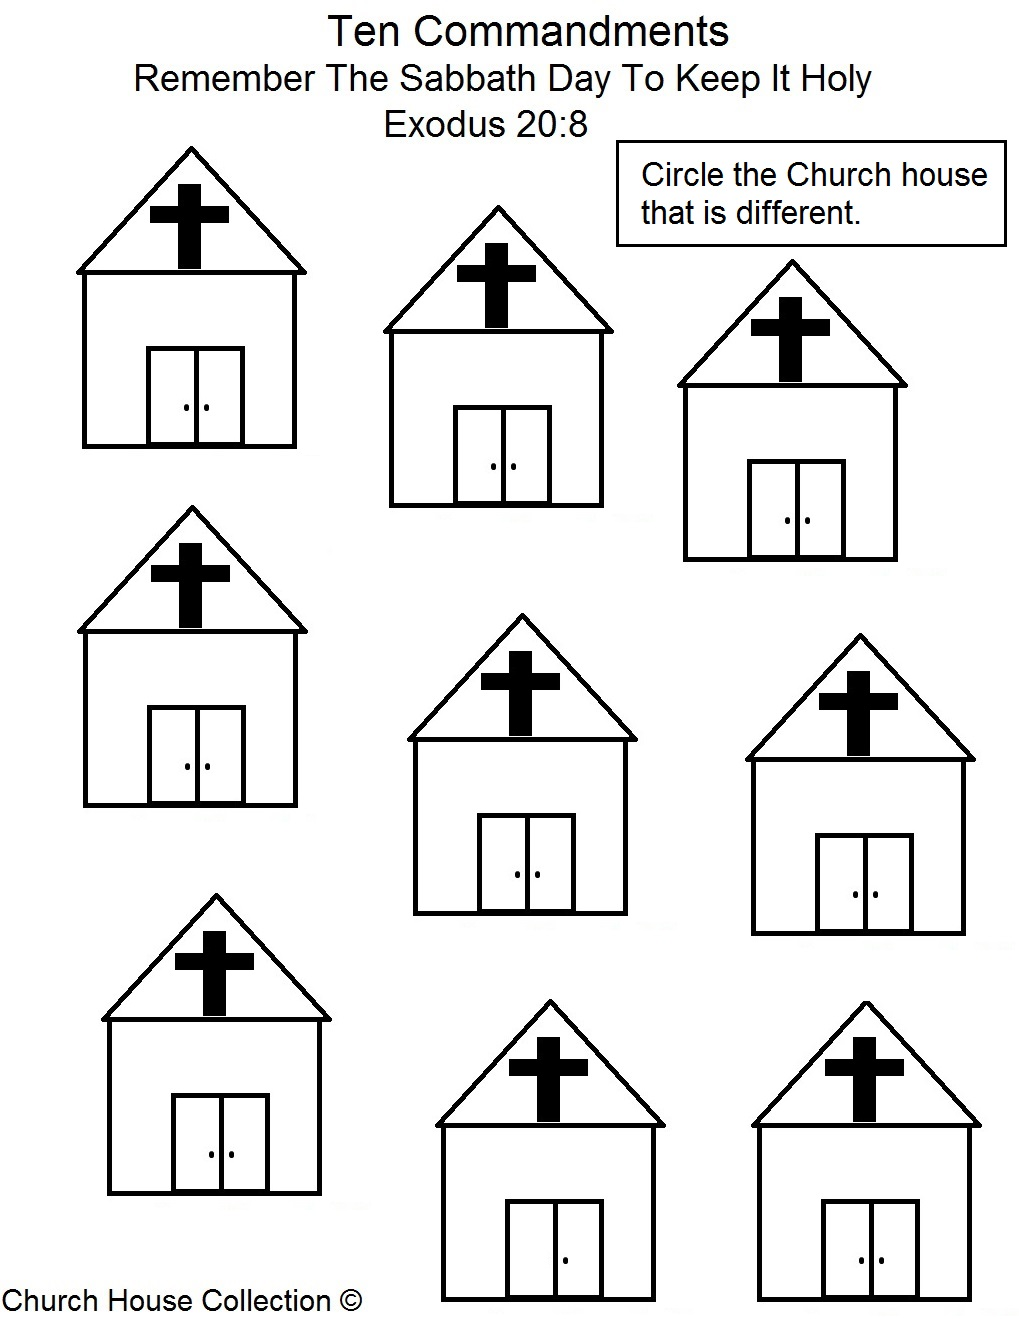 sabbath coloring pages - remember the sabbath day and keep it holy sunday school lesson